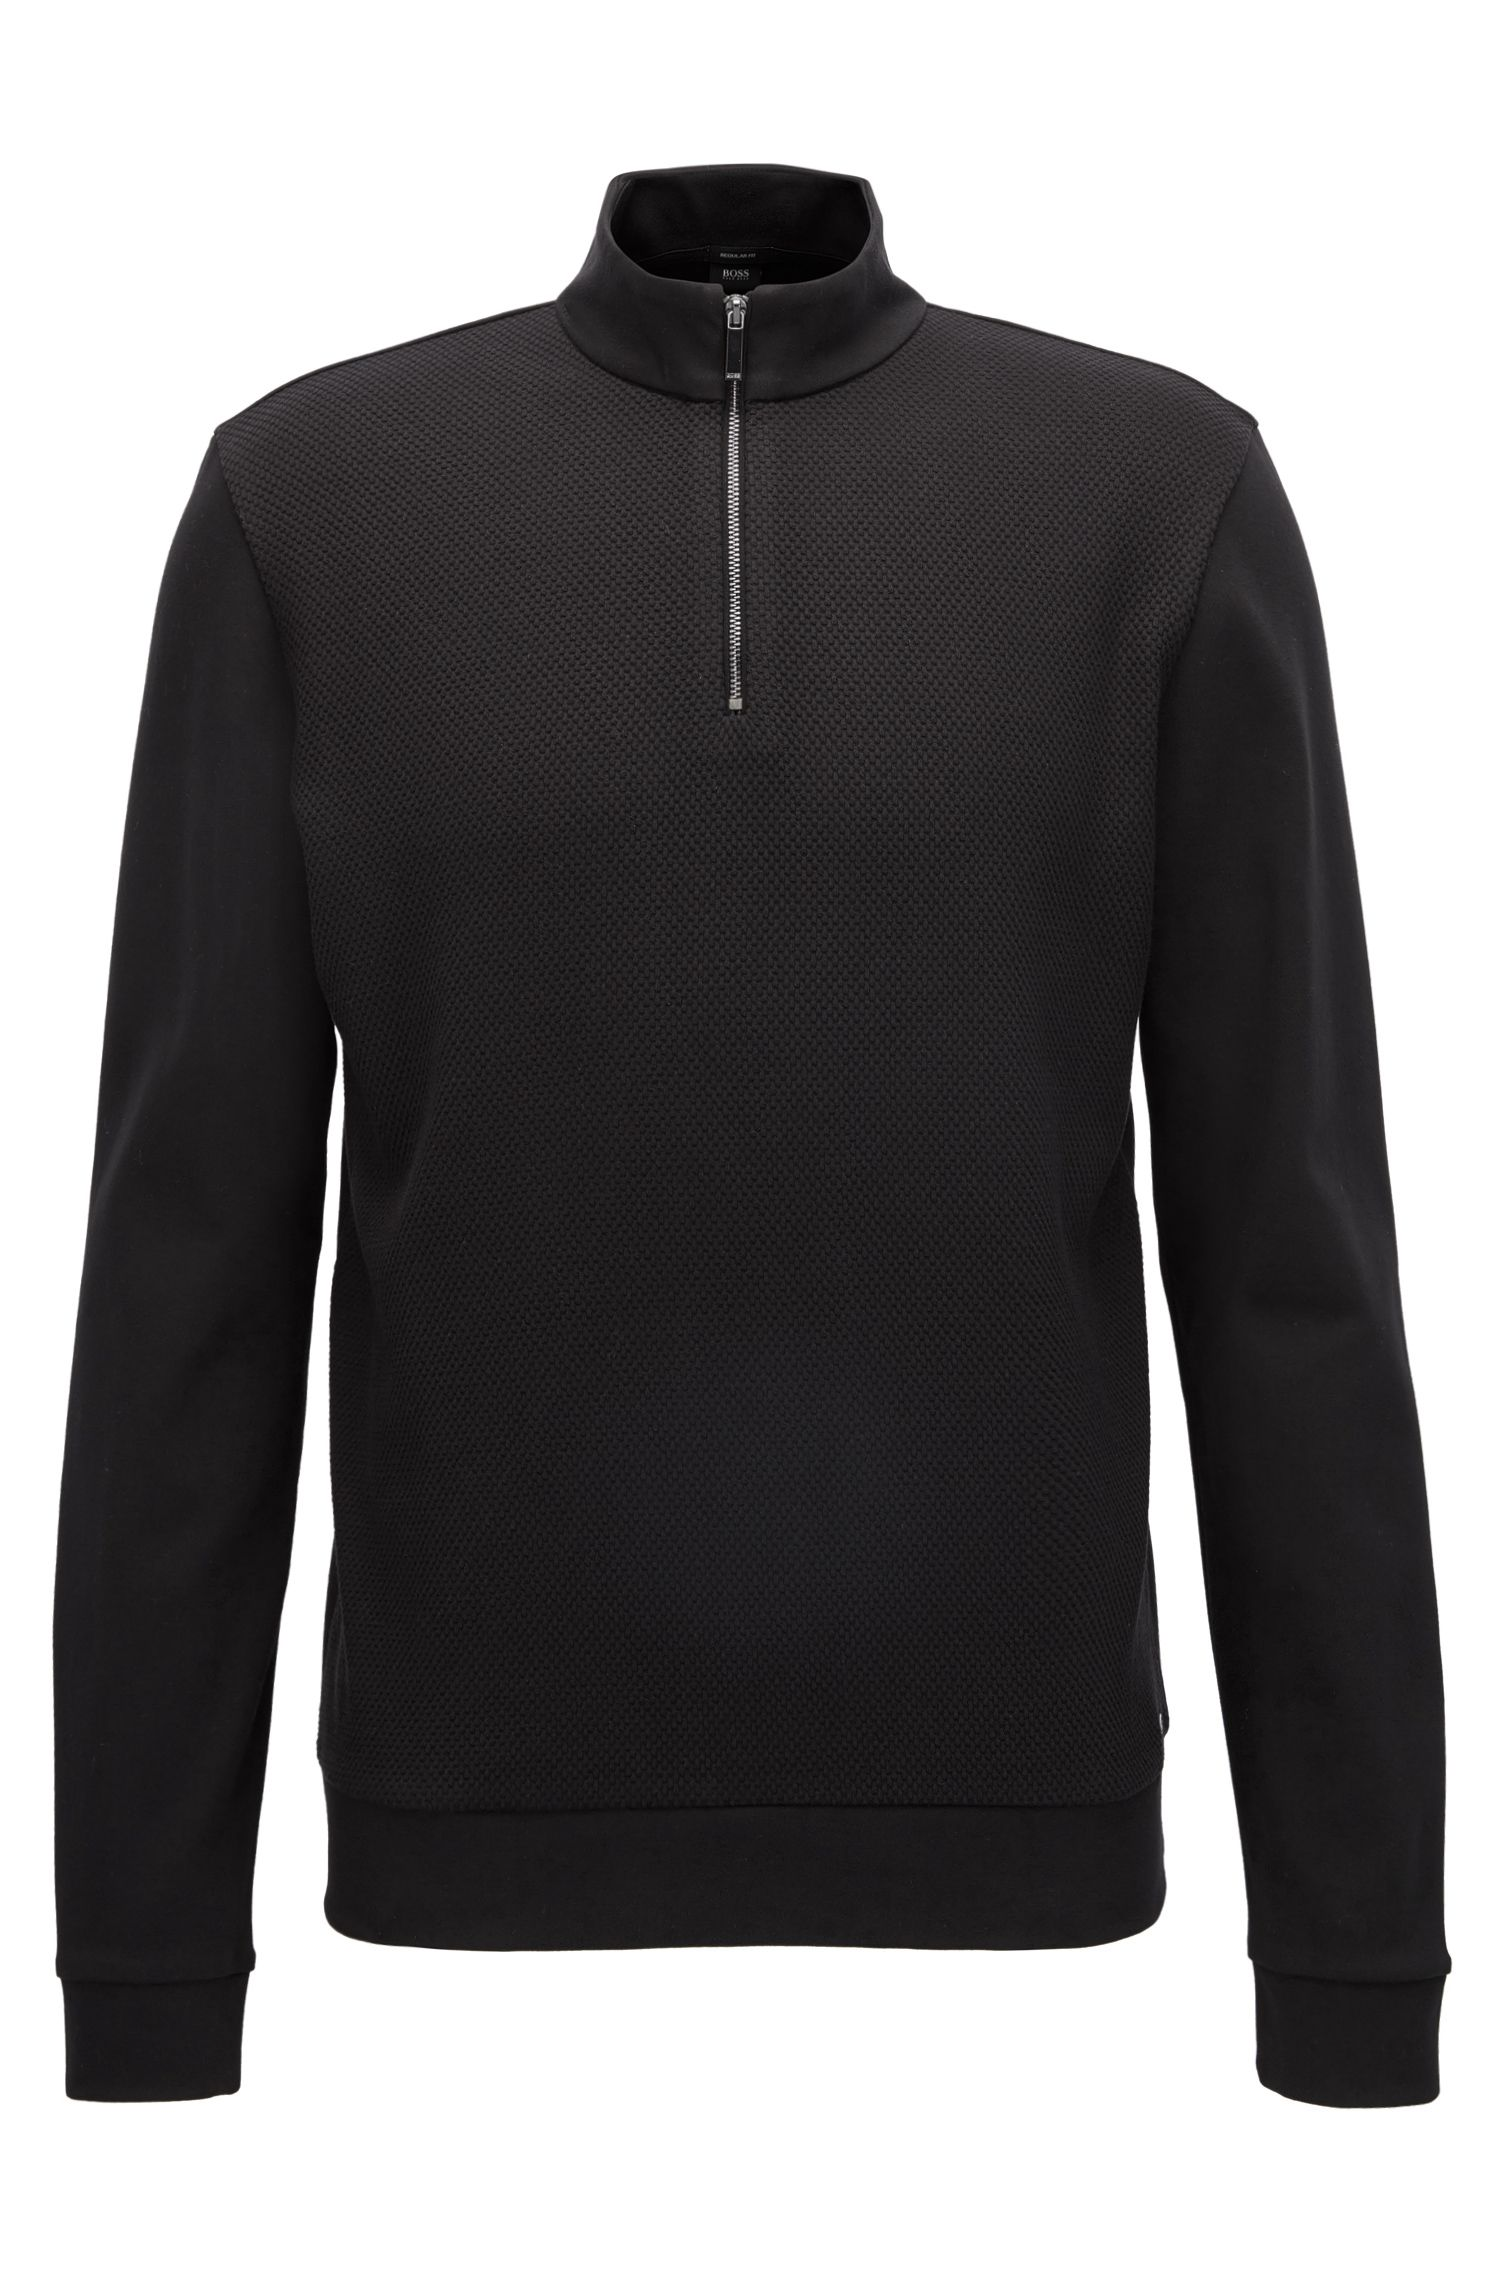 Sweat en coton mercerisé à encolure zippée